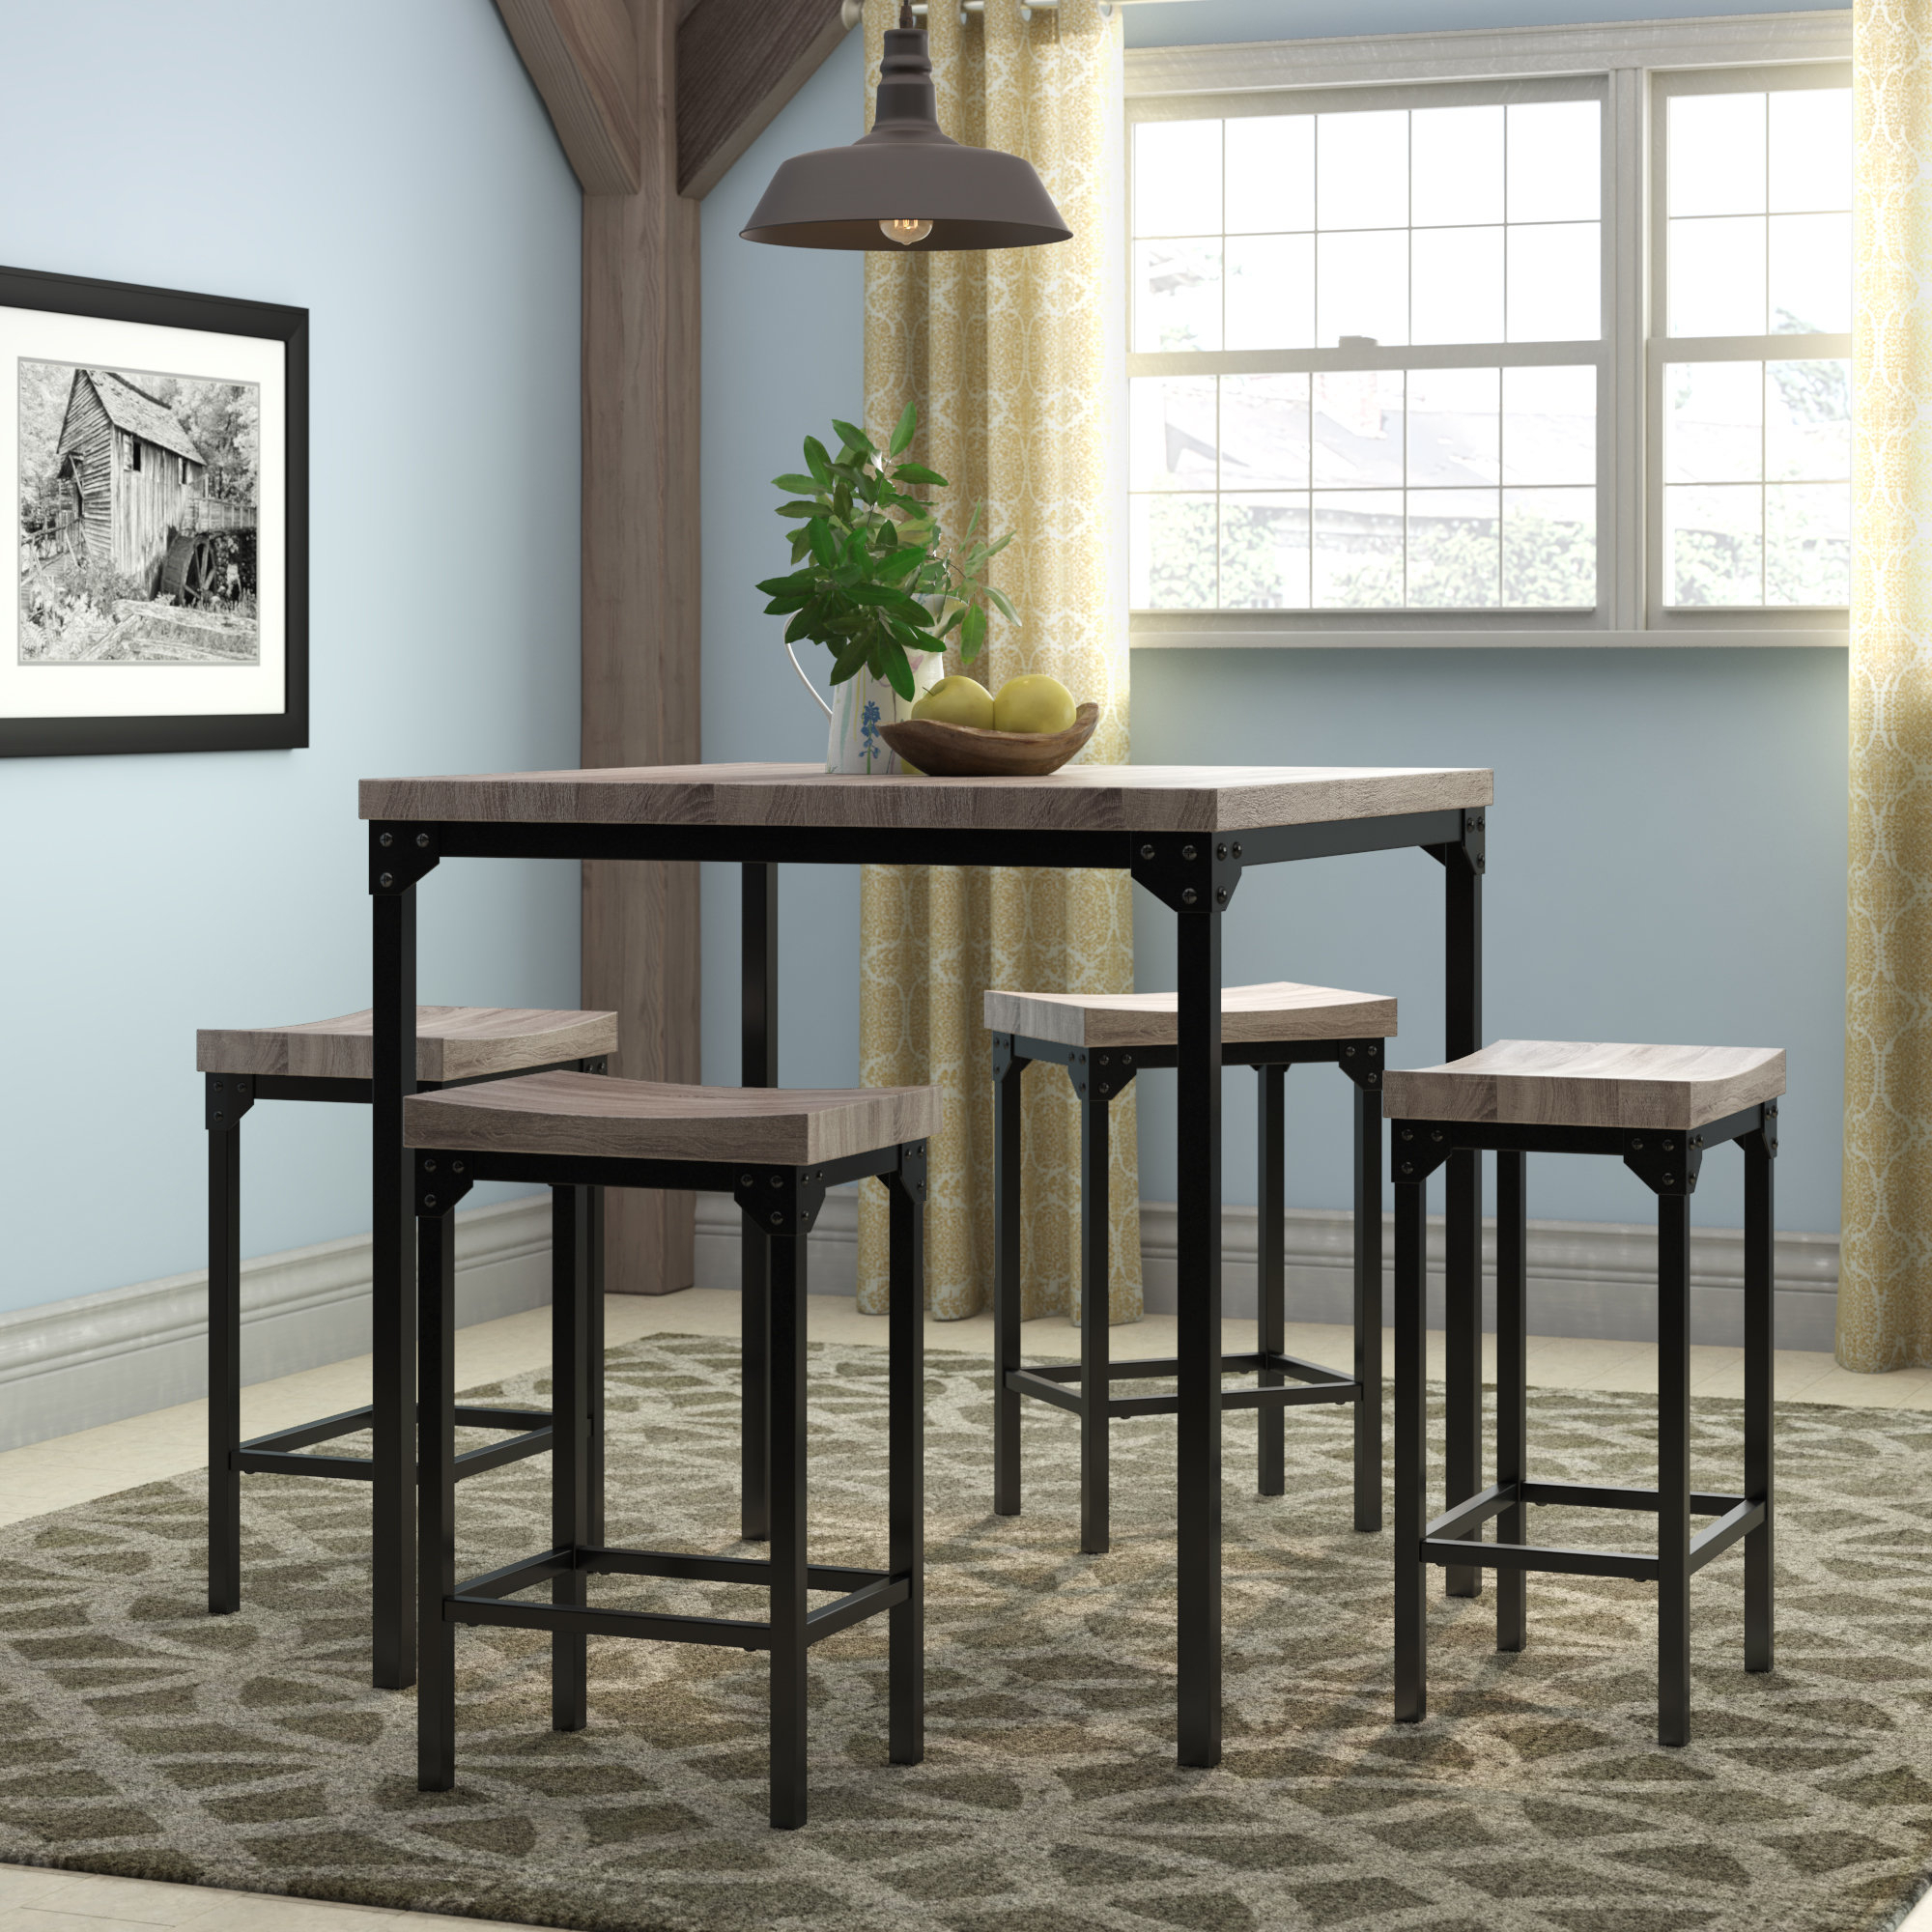 Gracie Oaks Wegner 5 Piece Counter Height Dining Set & Reviews Within Current Kerley 4 Piece Dining Sets (View 22 of 25)